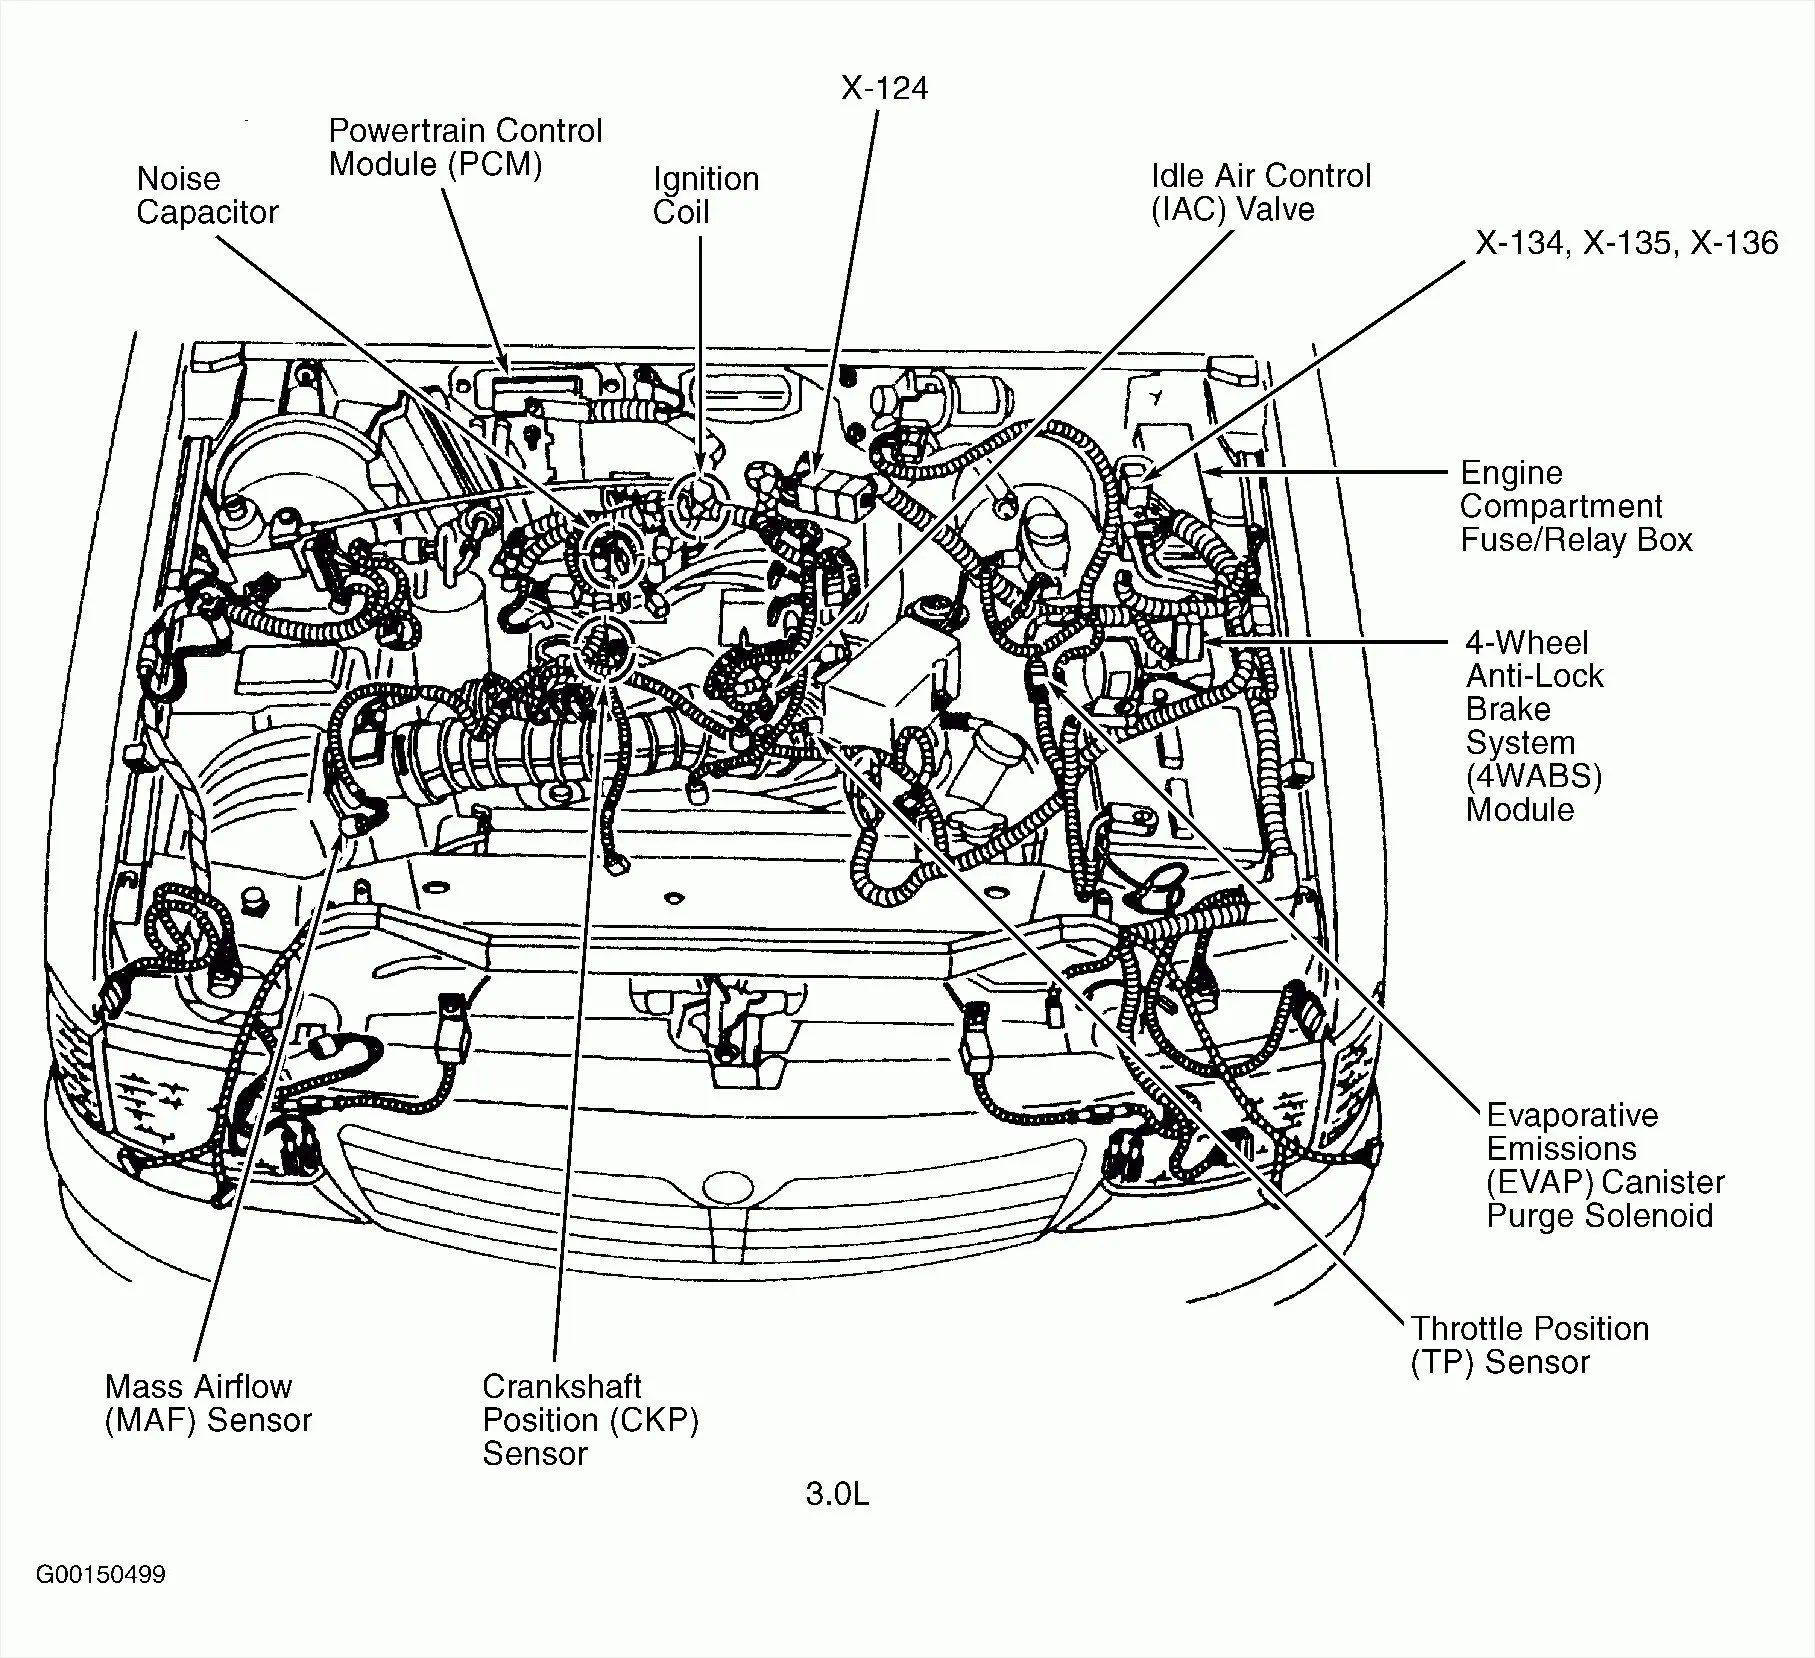 hight resolution of mazda protege timing belt diagram on 1998 mazda mpv engine diagram diagram of a 1999 mazda millenia timing belt 2000 mazda protege sensor